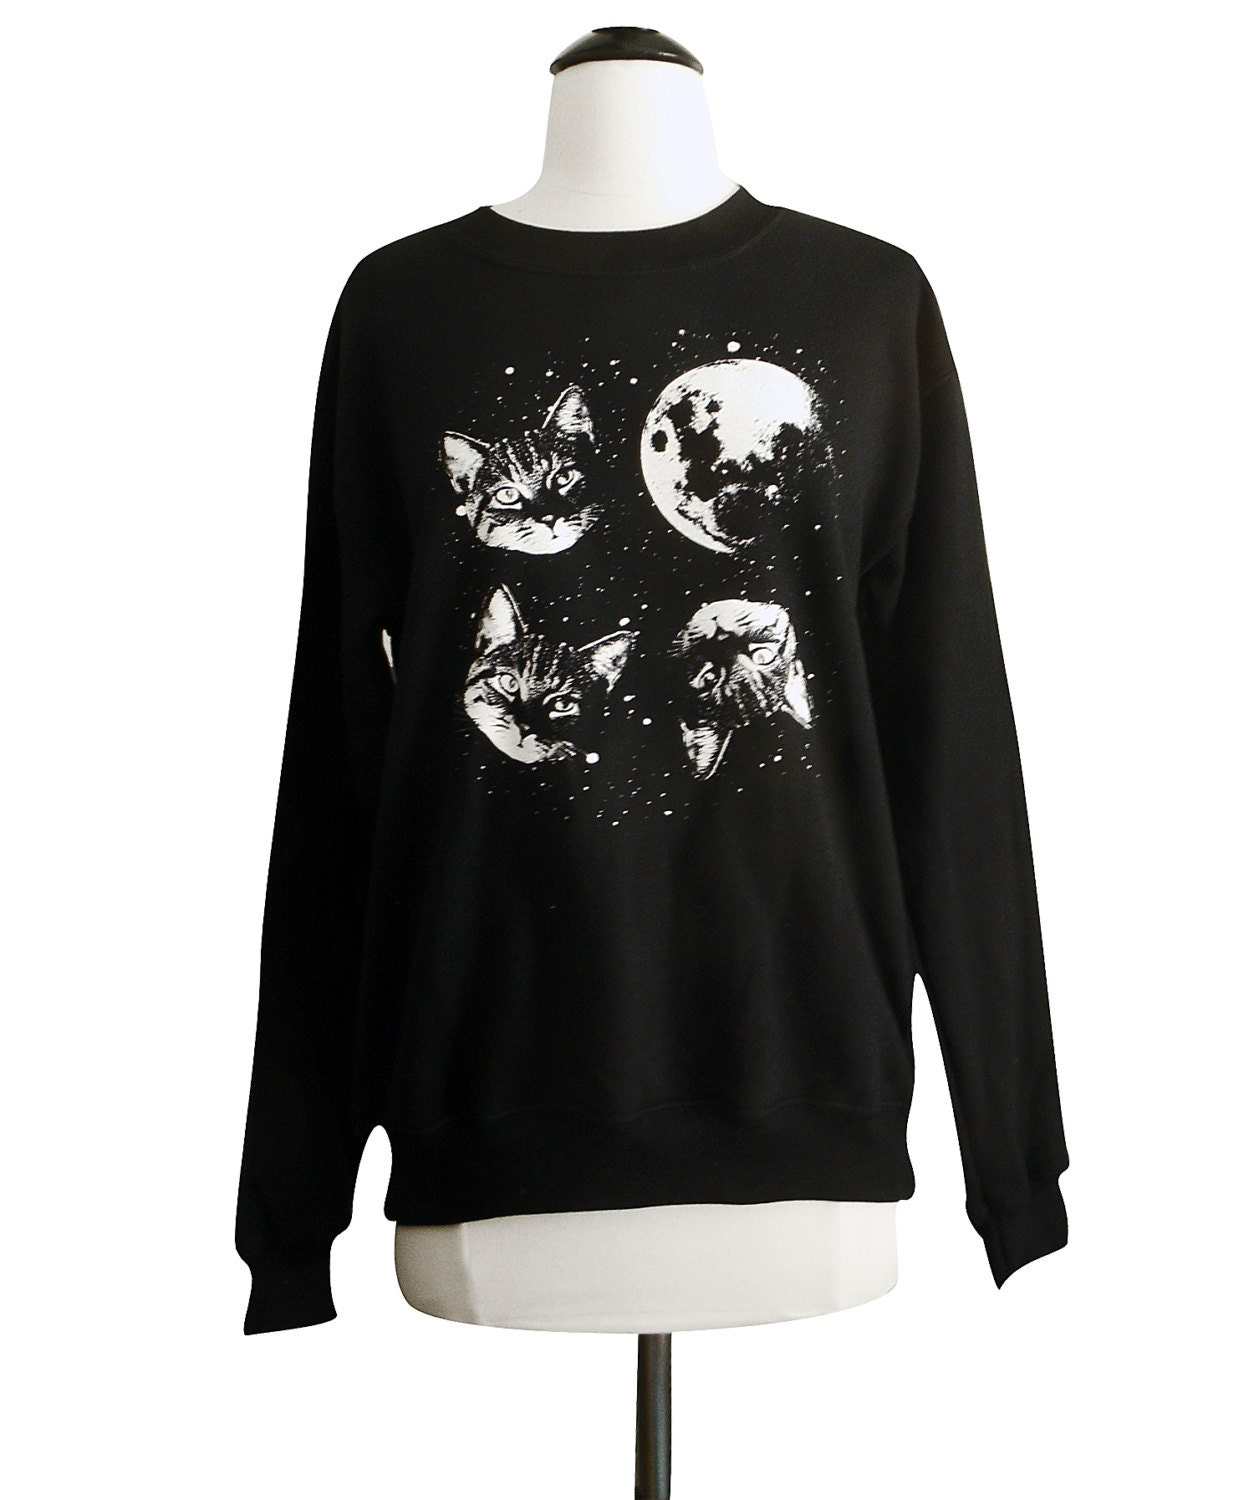 Buy Two Moon Japan Japanese Sweatshirt, Size: L, Description: Retail $ usd -- Fits on the medium side of large. Up for sale is a navy made in Japan Two Moon crew neck sweatshirt. This is a raglan sleeve (freedom movement) crew neck sweat.